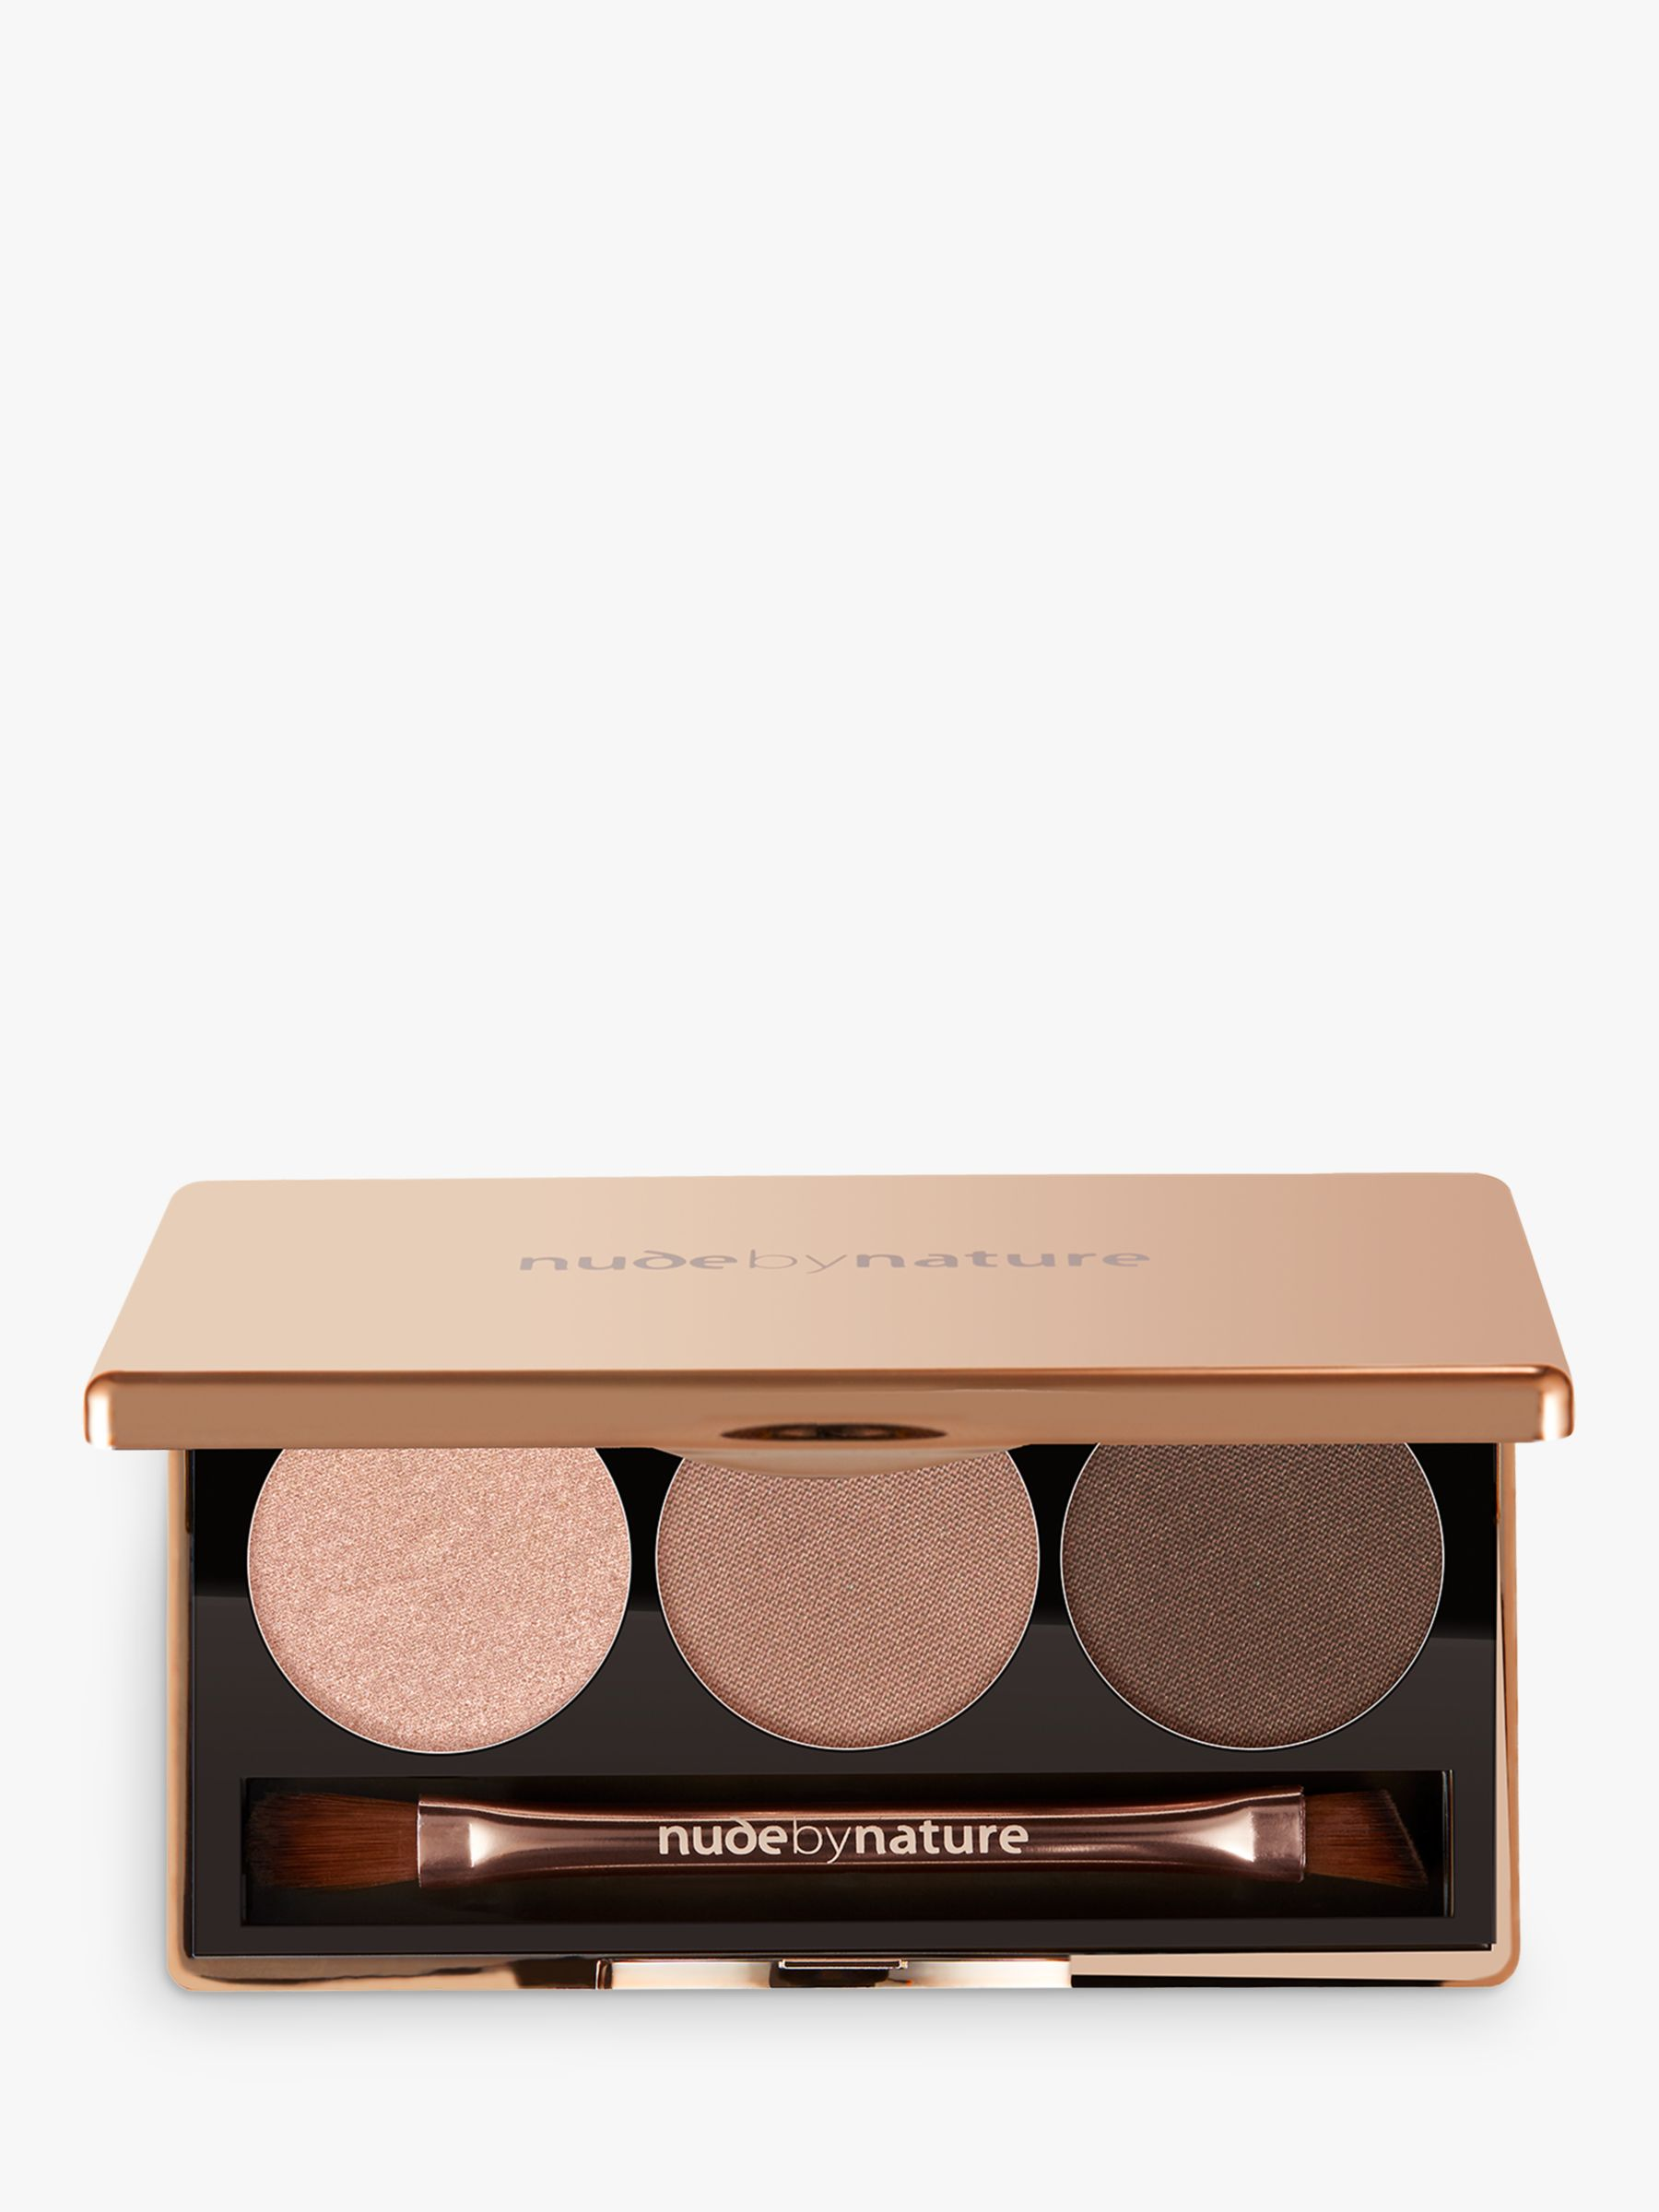 Nude by Nature Nude by Nature Natural Illusion Eyeshadow Trio, 01 Nude